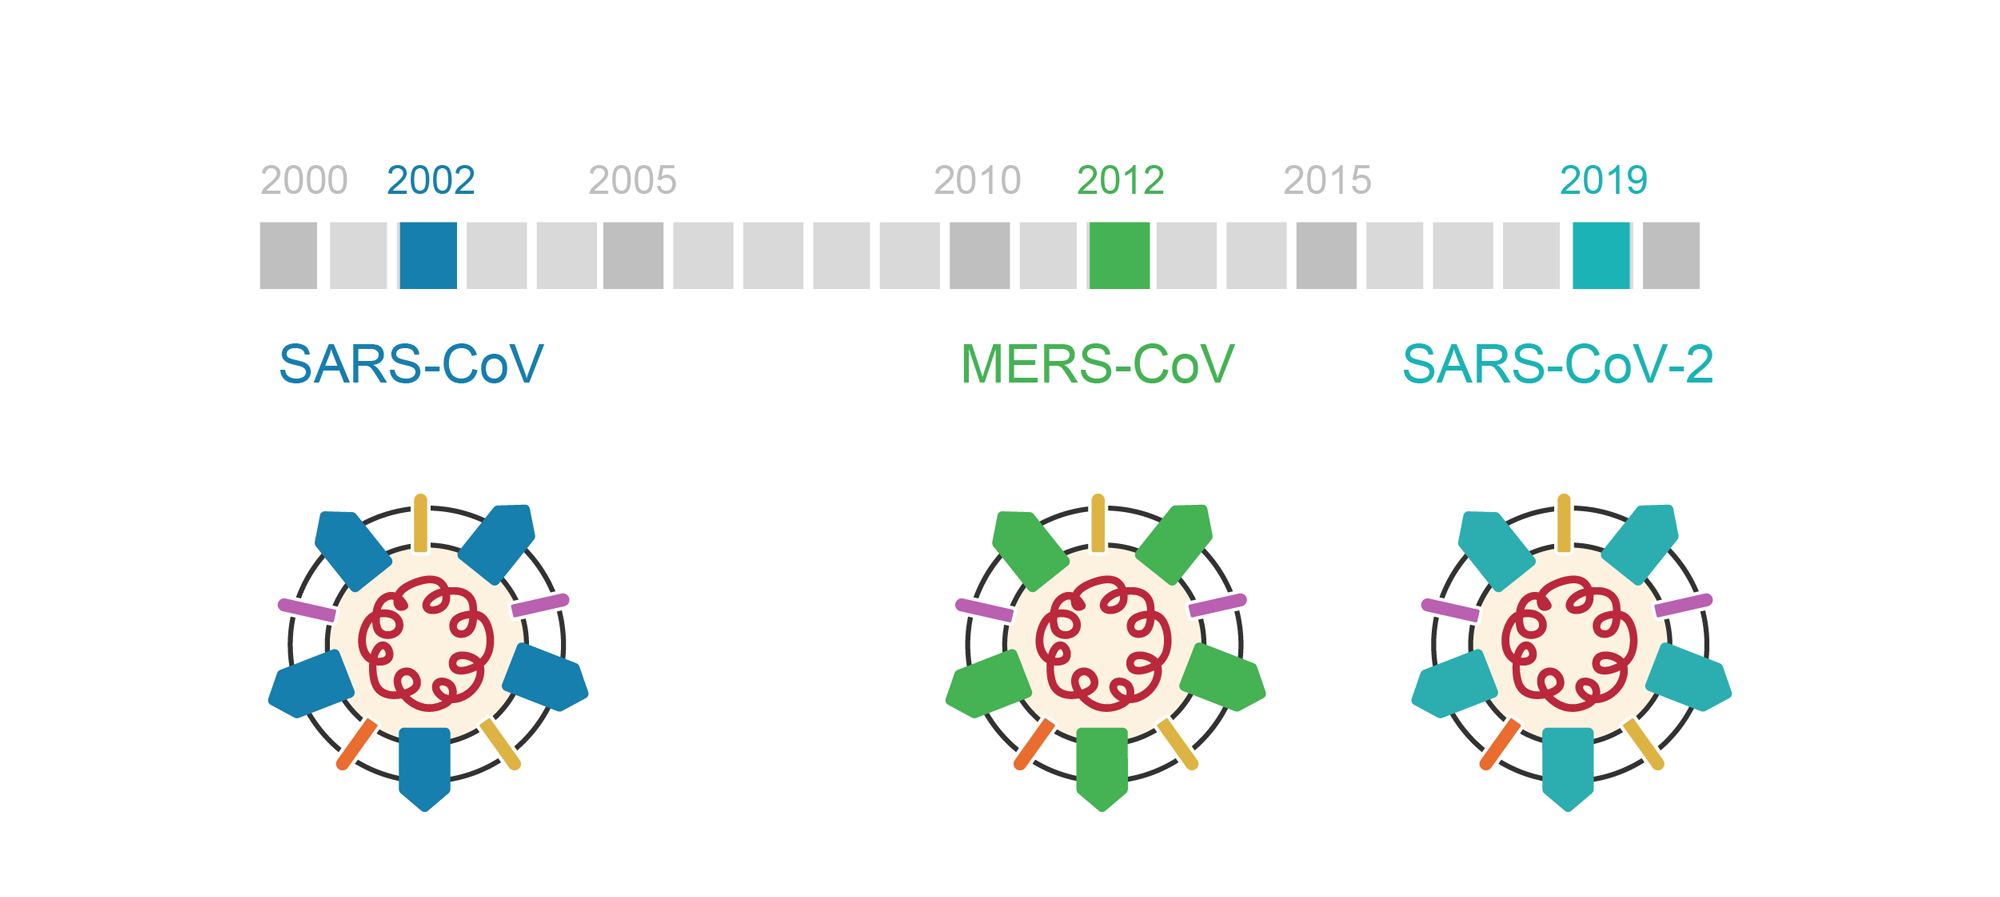 Timeline of coronavirus outbreaks from 2000 to 2020. 2002 was SARS-CoV. 2012 was MERS-CoV. 2019 was SARS-CoV-2. Illustration.